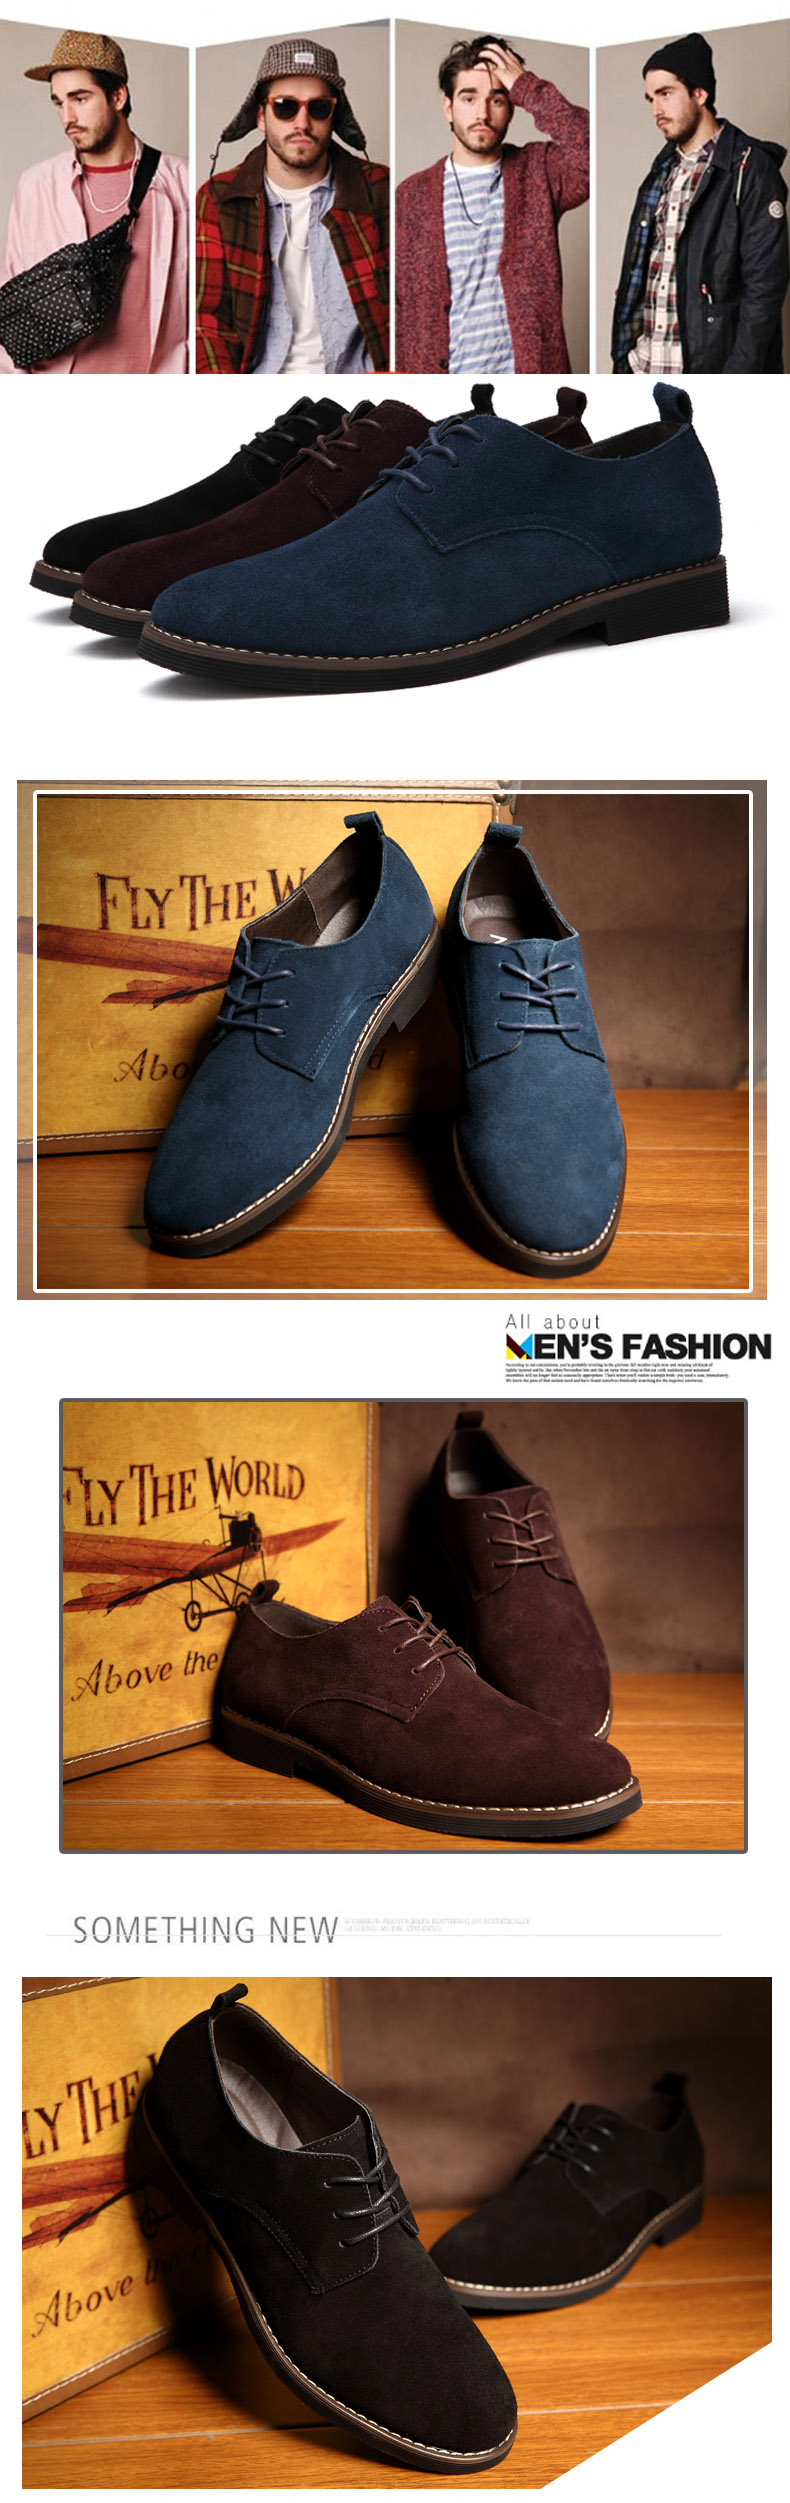 HTB1BTQGXjzuK1RjSspeq6ziHVXas ROXDIA plus size 39-48 genuine leather men casual flats waterproof dress oxford man shoes lace up for work male loafers RXM098